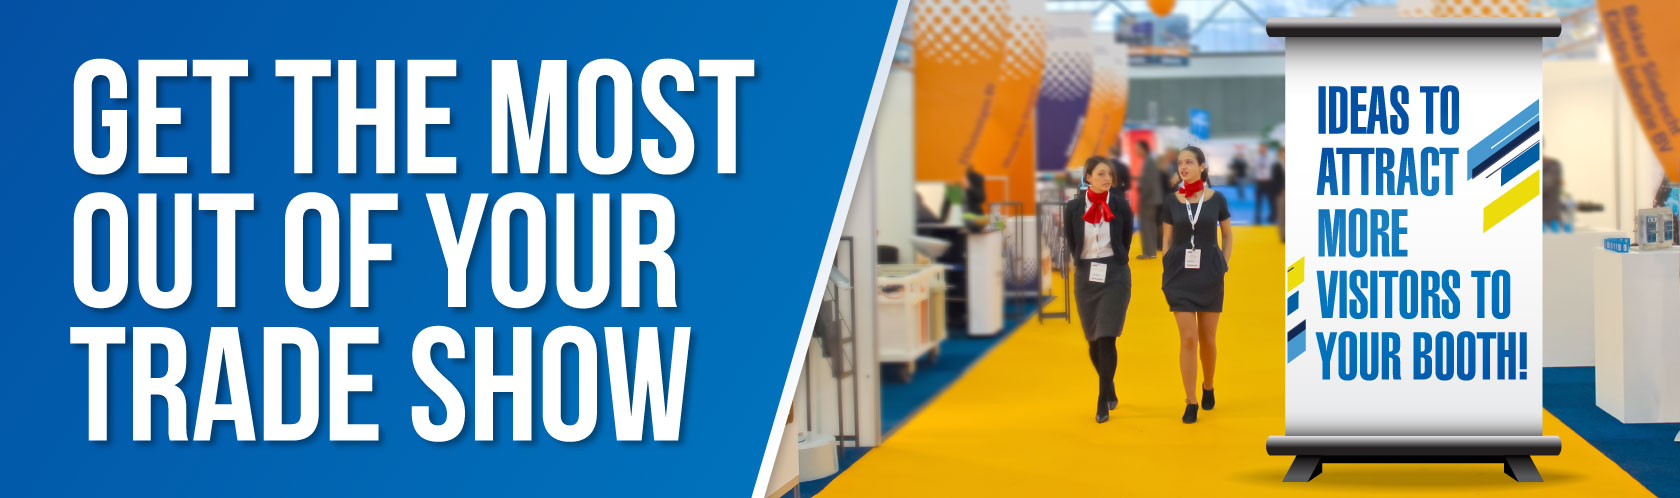 Get The Most out of Your Trade Show